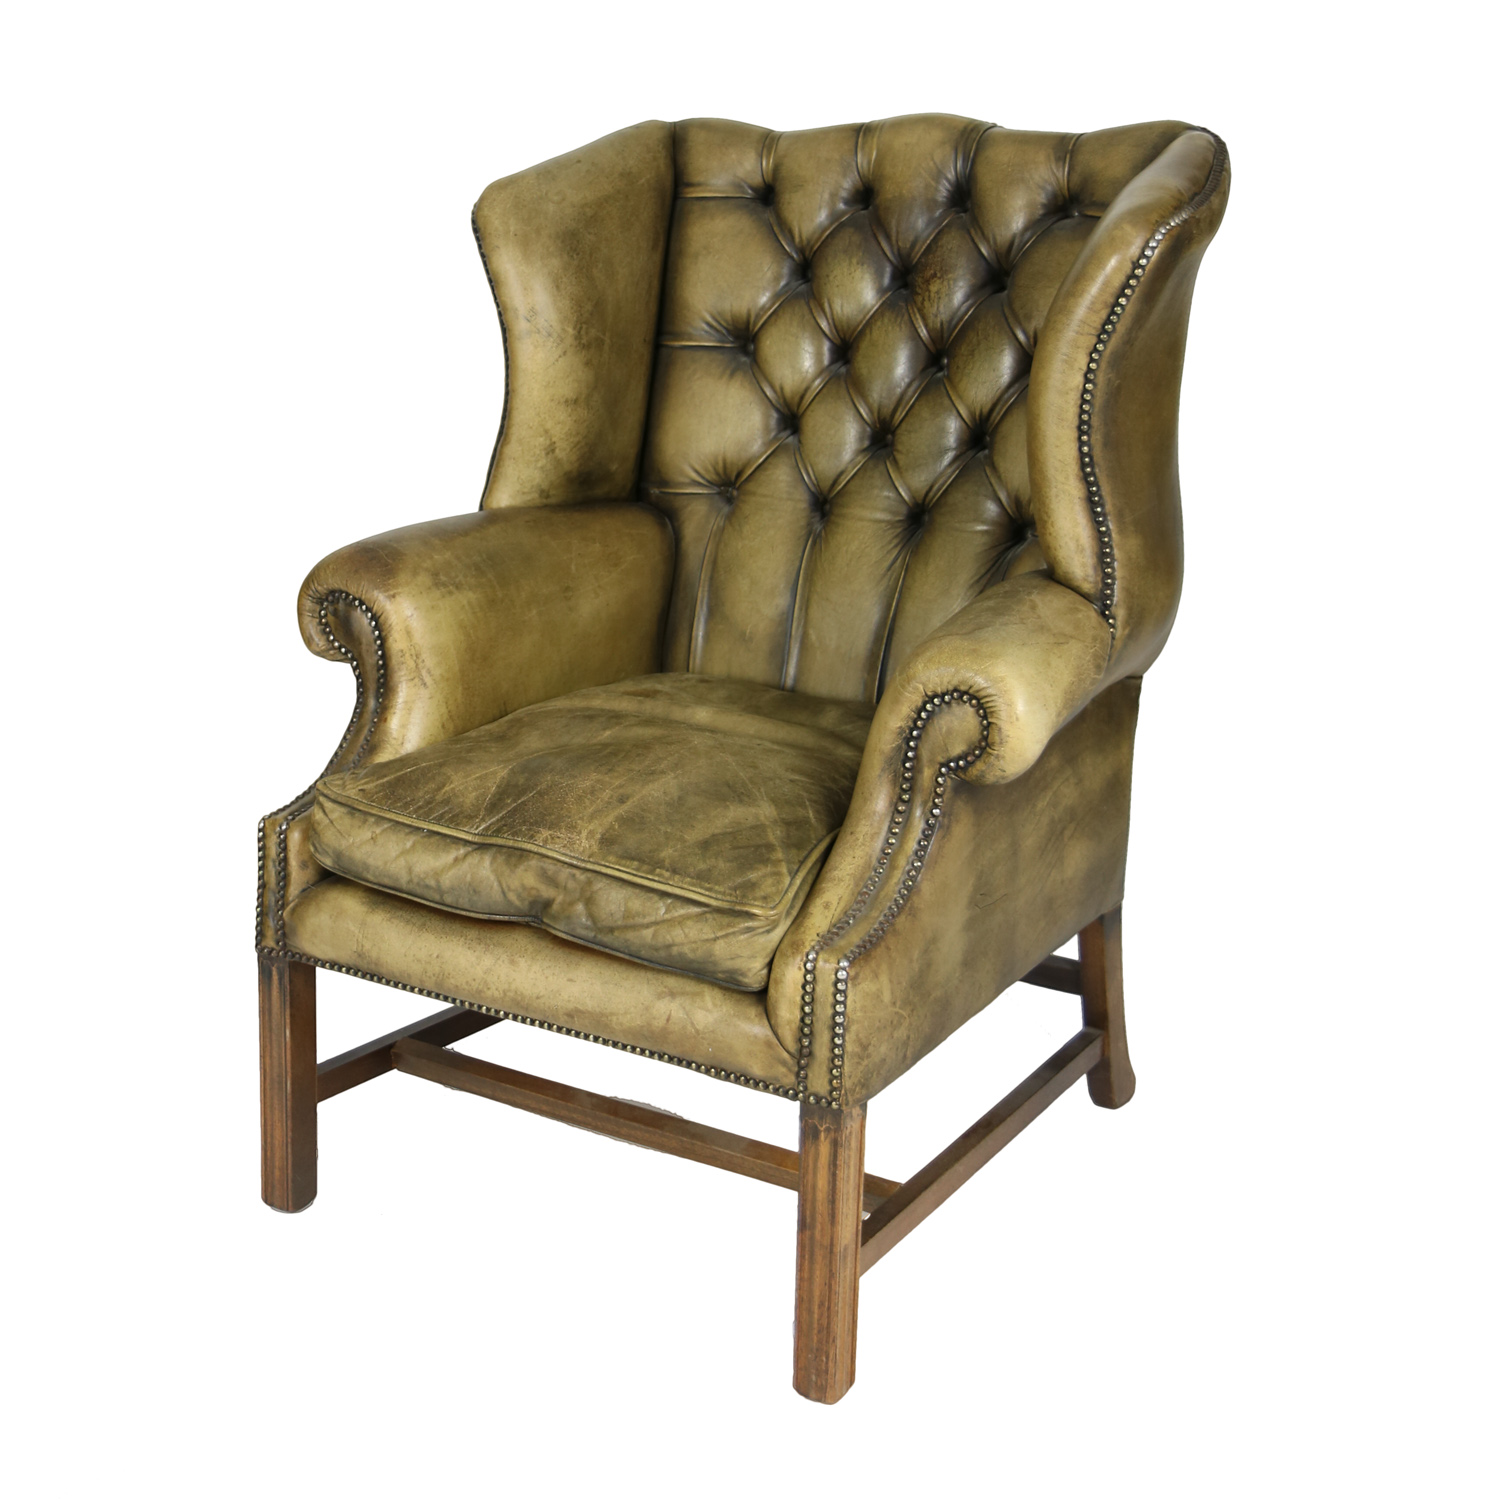 Brown Leather Wingback Chair Handsome Mahogany And Original Tufted Green Leather Wing Chair English Circa 1880